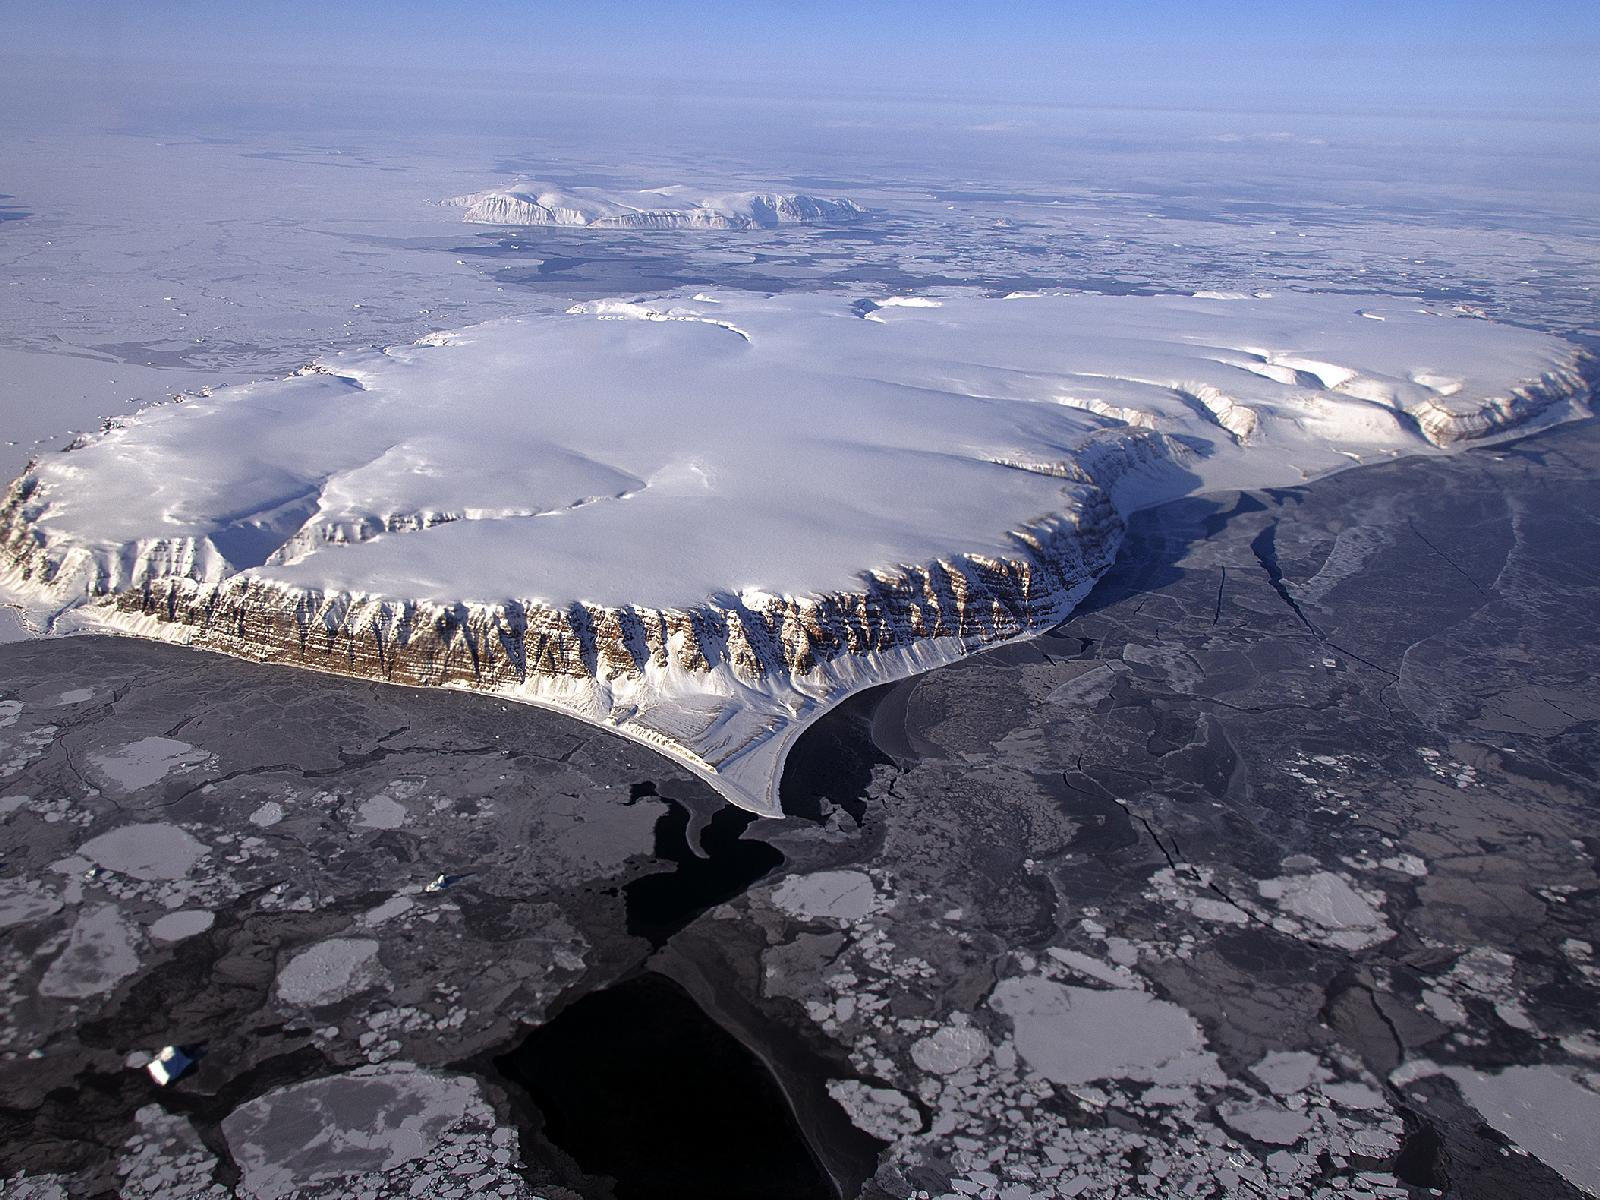 NASA Scientists Soar Over a Mini Ice Cap